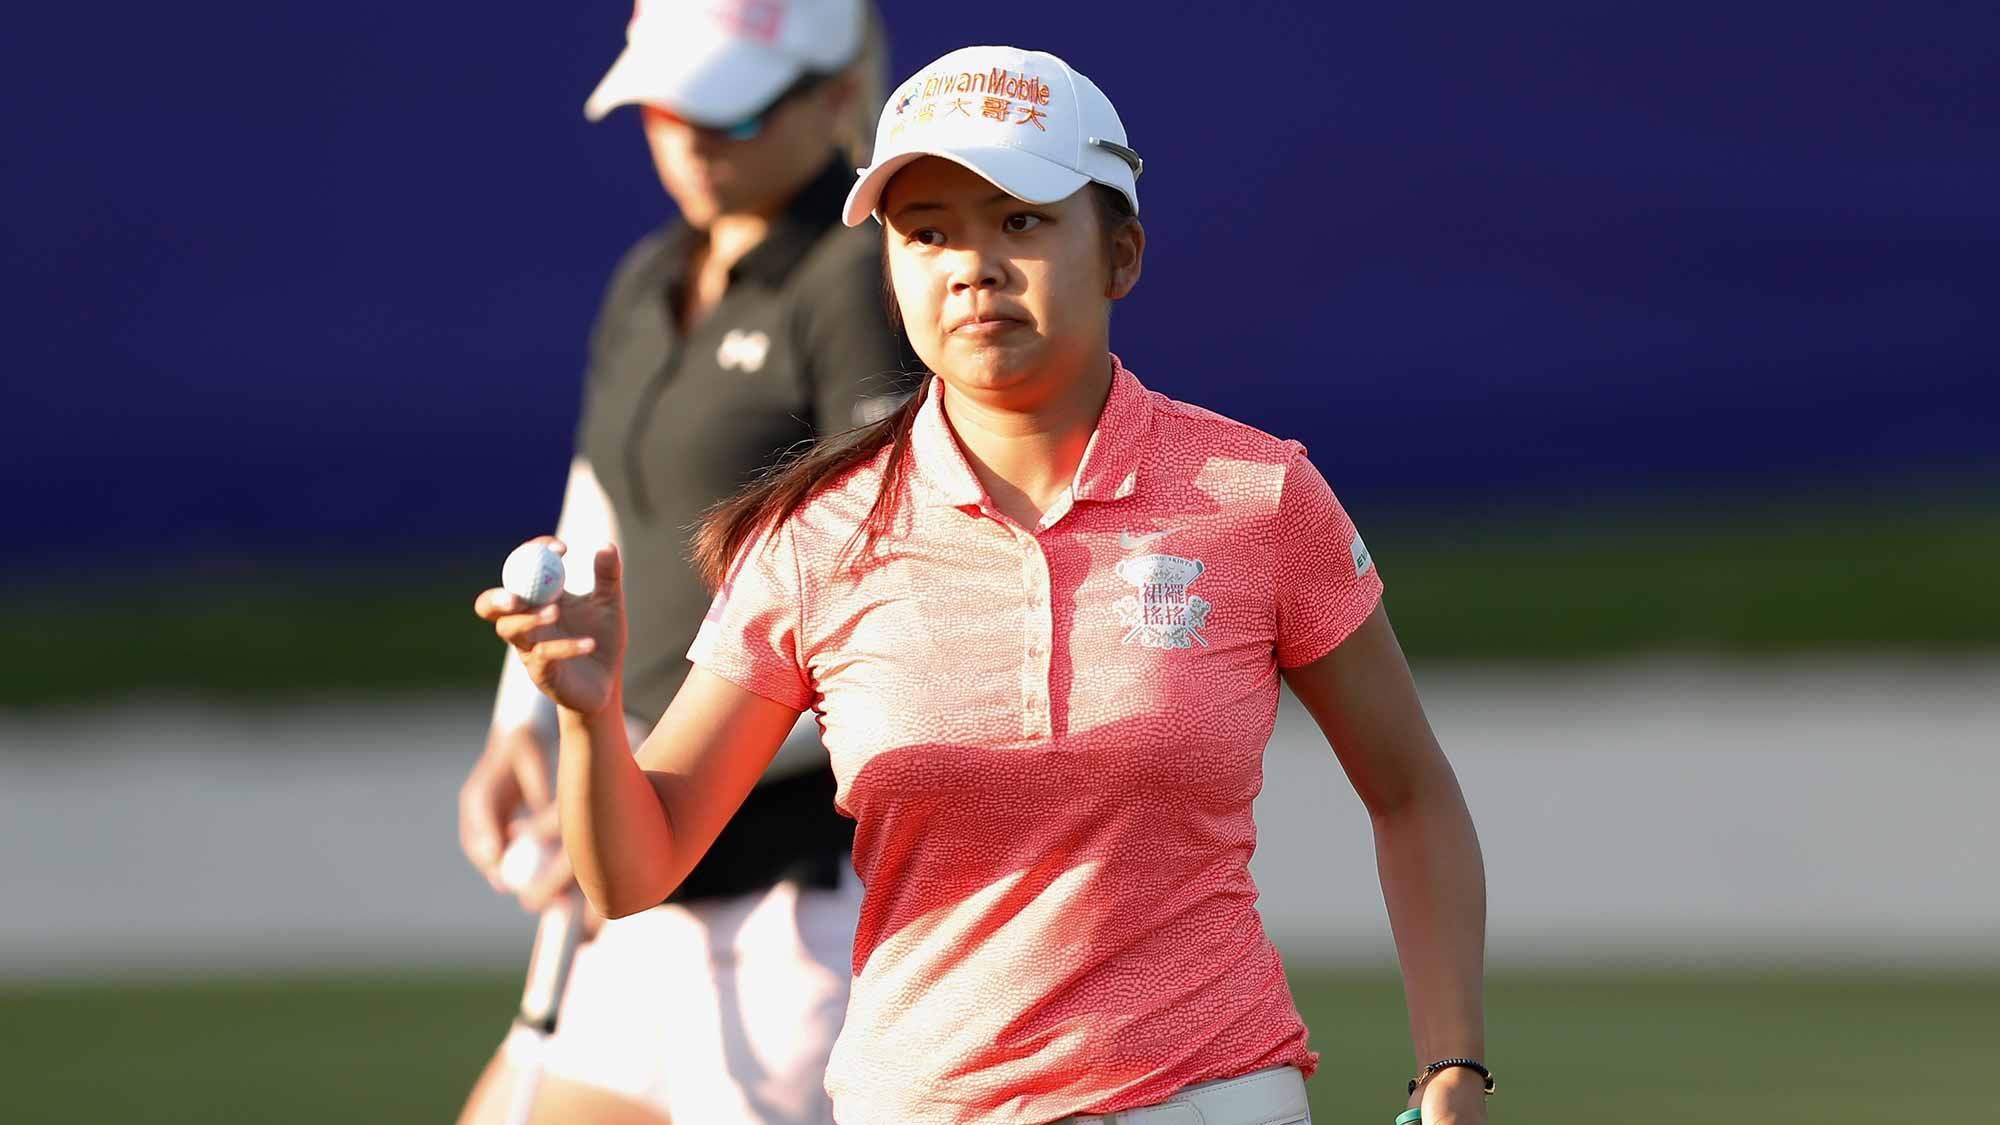 Wei-Ling Hsu acknowledges to spectators at the eighteenth hole during the third round of the Swinging Skirts LPGA Taiwan Championship at Ta Shee Golf & Country Club on October 27, 2018 in Taoyuan, Chinese Taipei